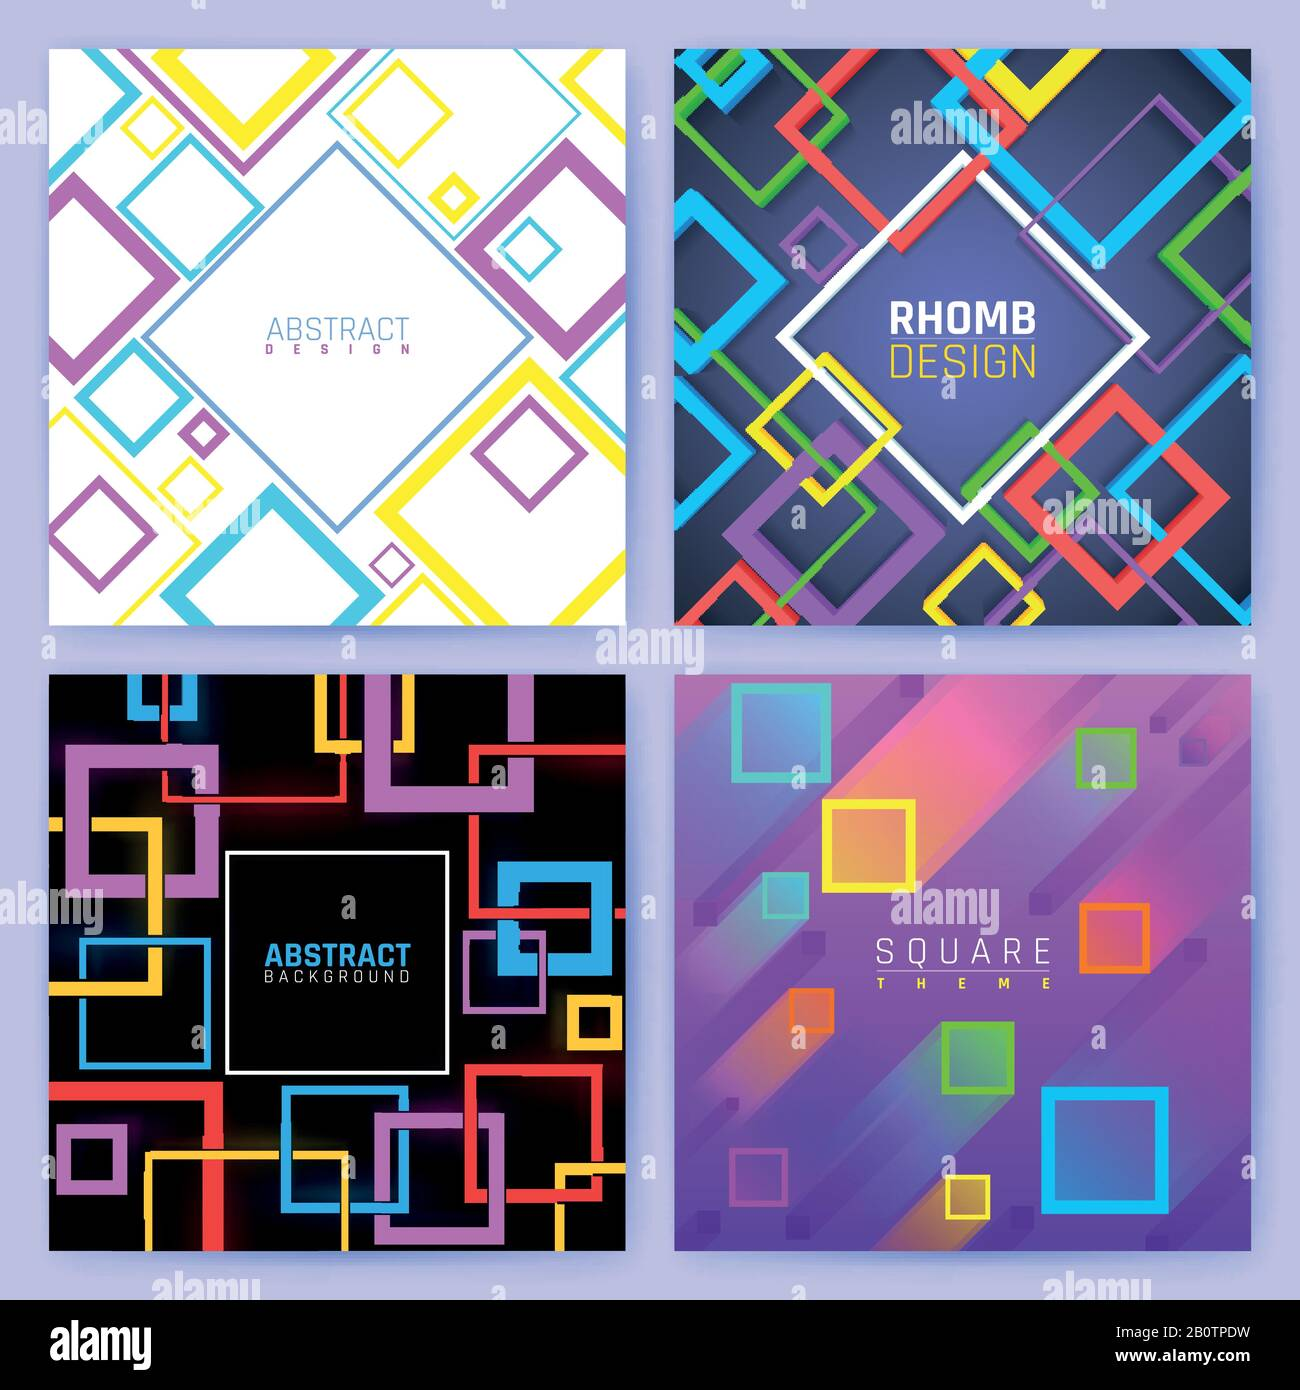 https www alamy com abstract geometric vector backgrounds with color squares creative design business brochure template colored geometric poster leaflet illustration image344751845 html